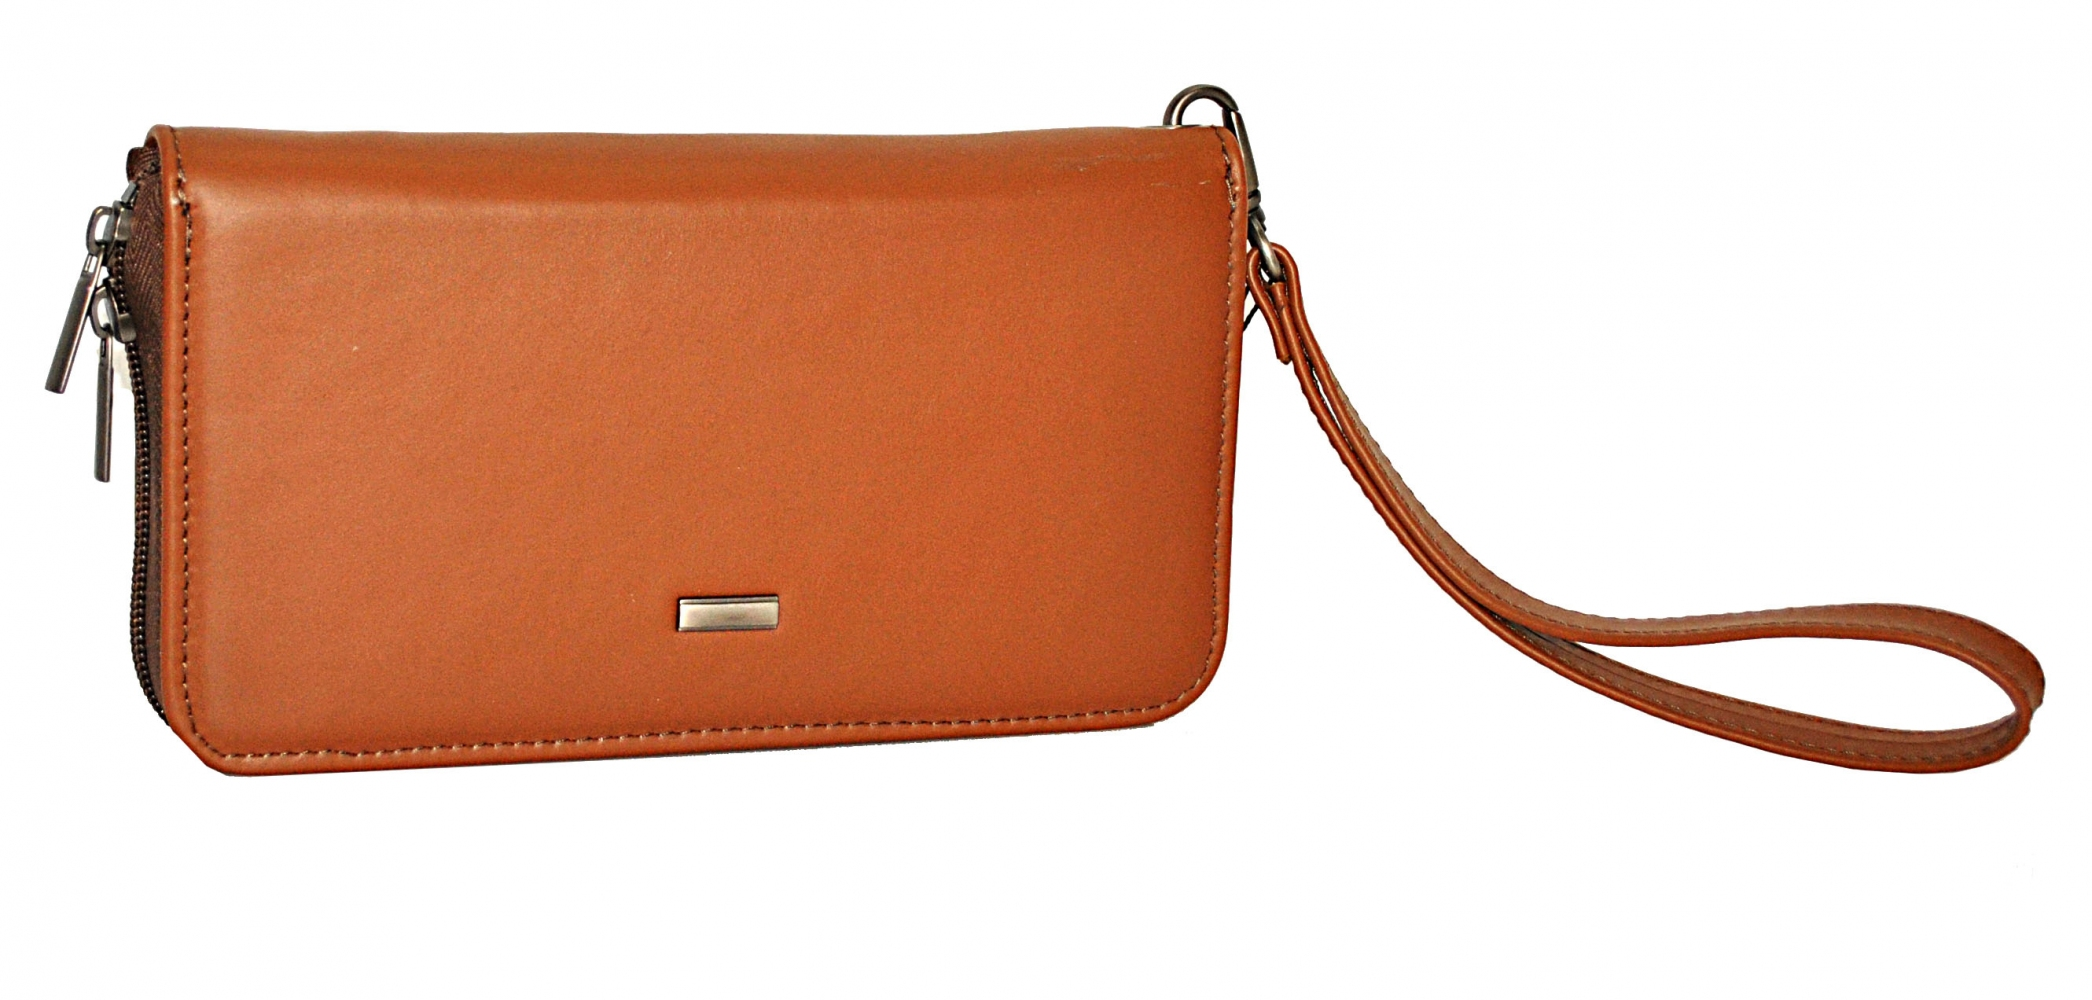 Men's handbag is 4306 ginger